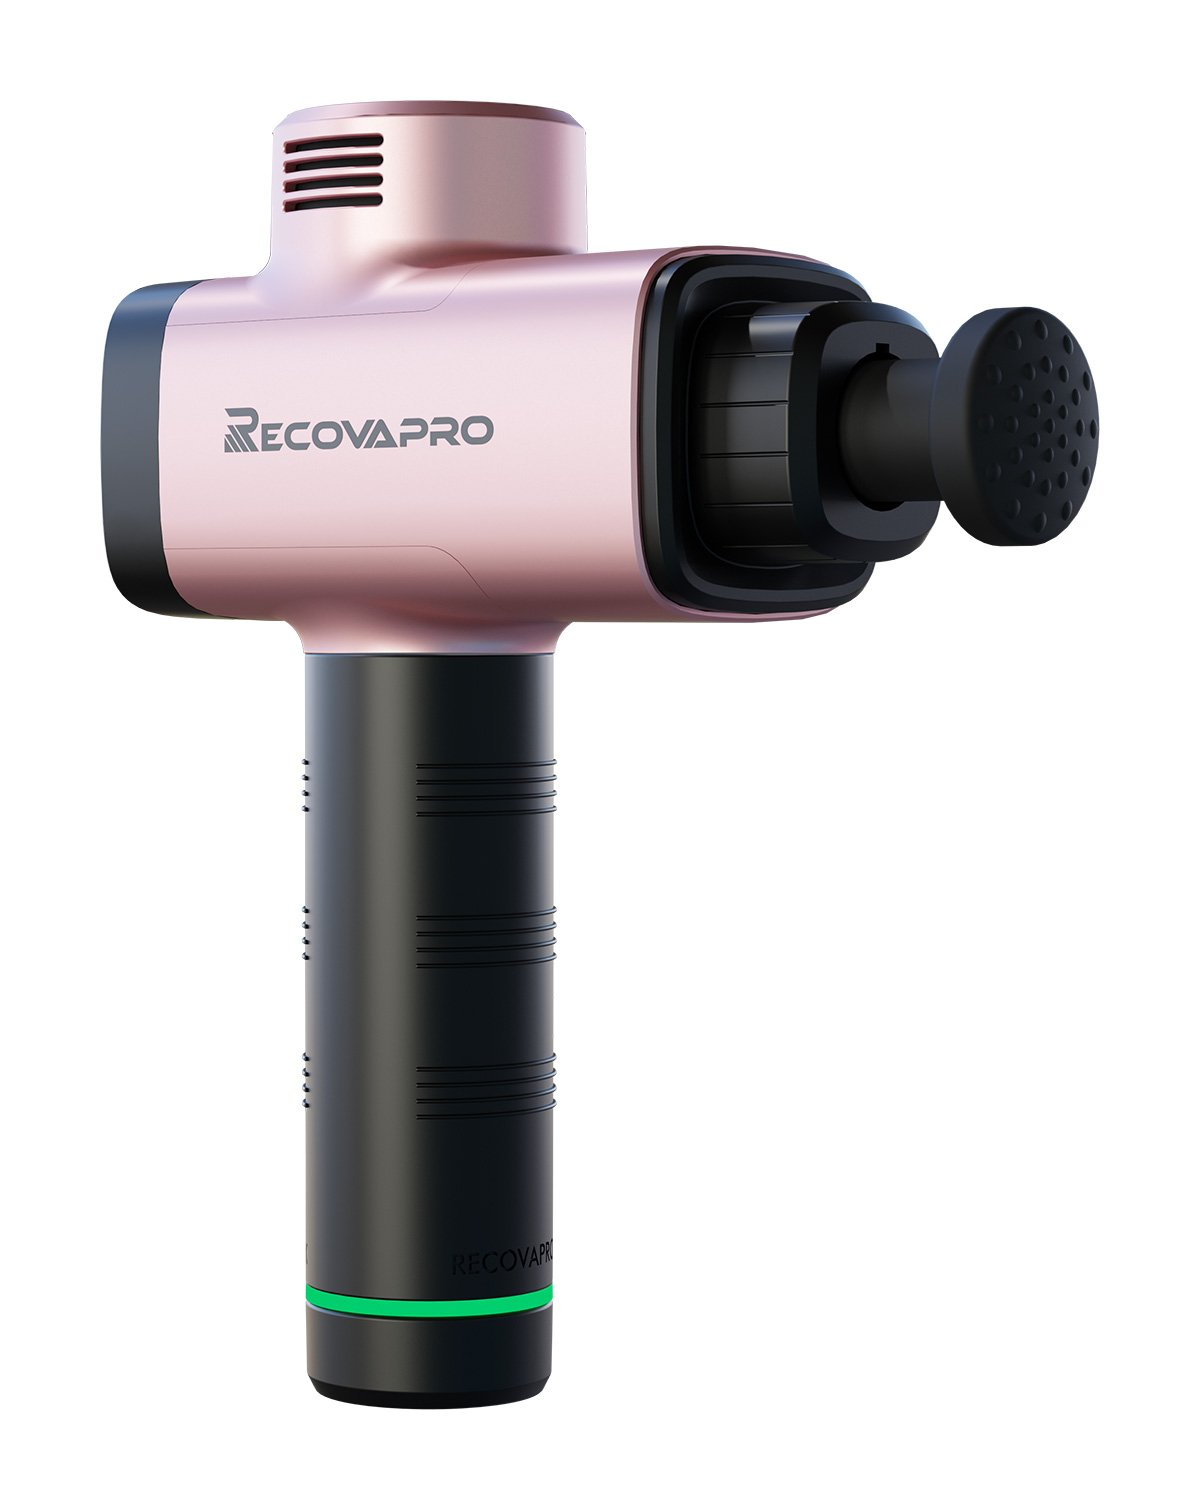 Rose Gold Recovapro Se